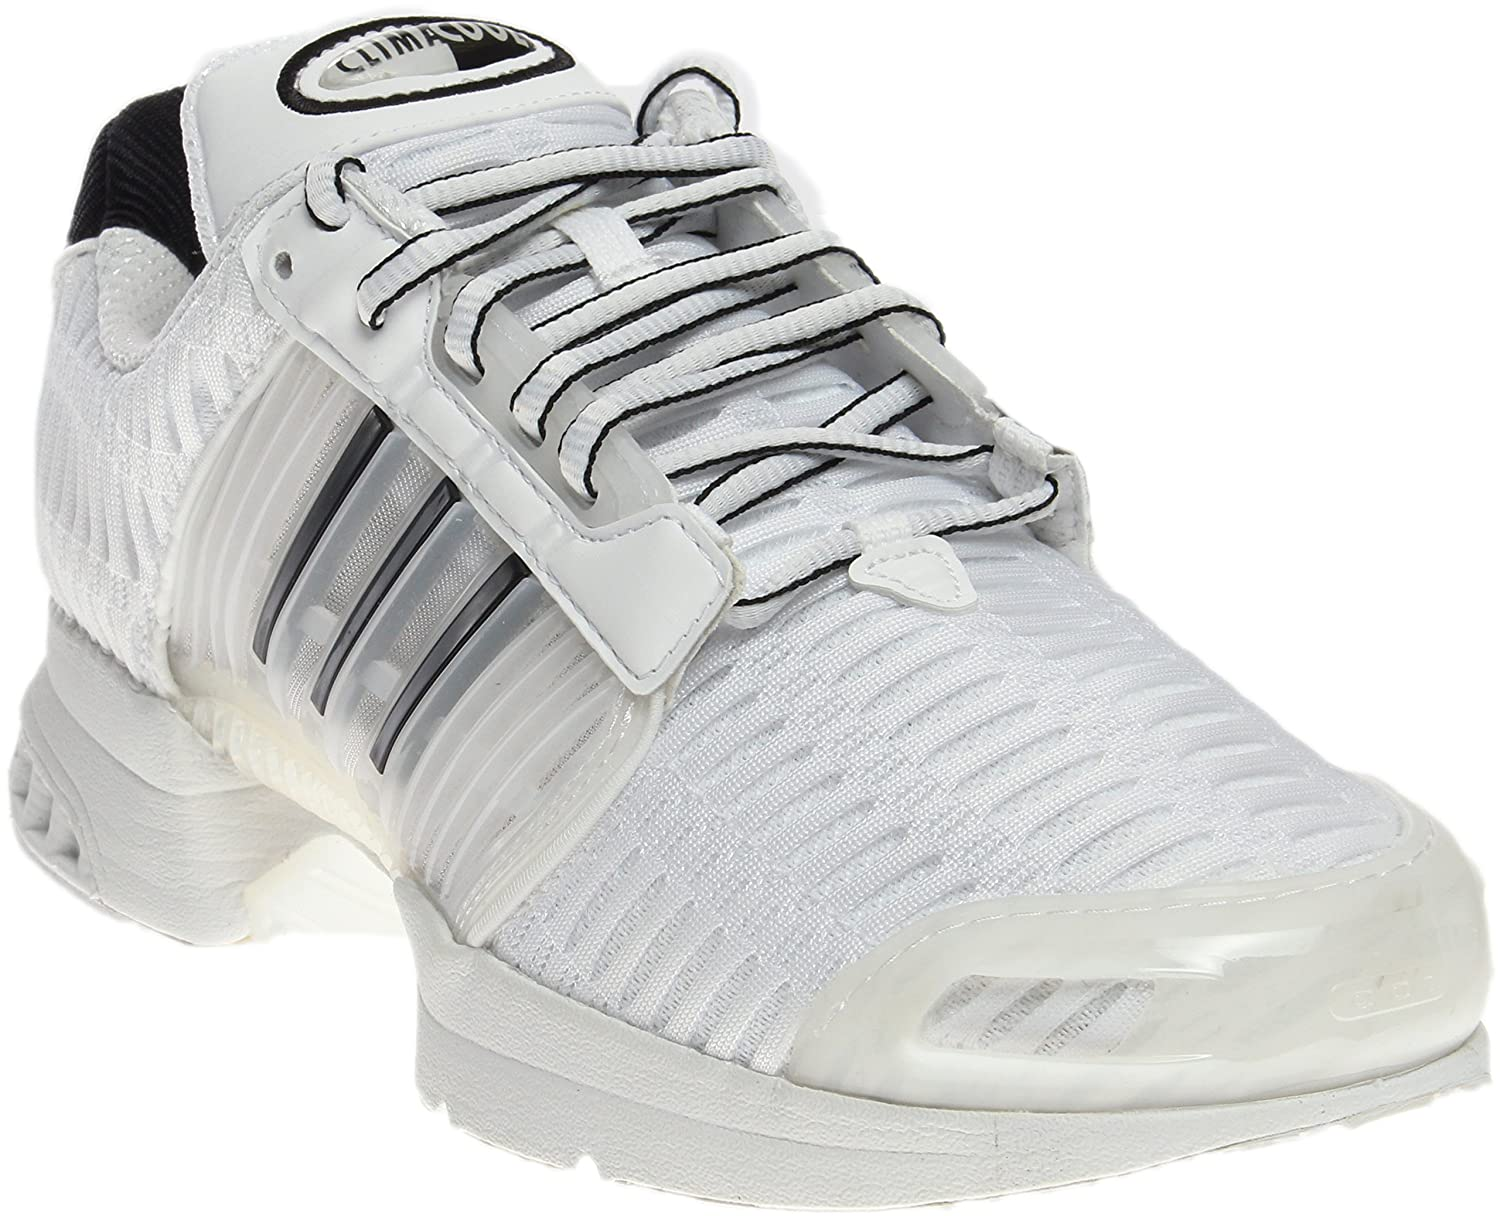 wholesale dealer 100% authentic premium selection adidas Clima Cool 1 Mens Shoes Running White/Black bb0671